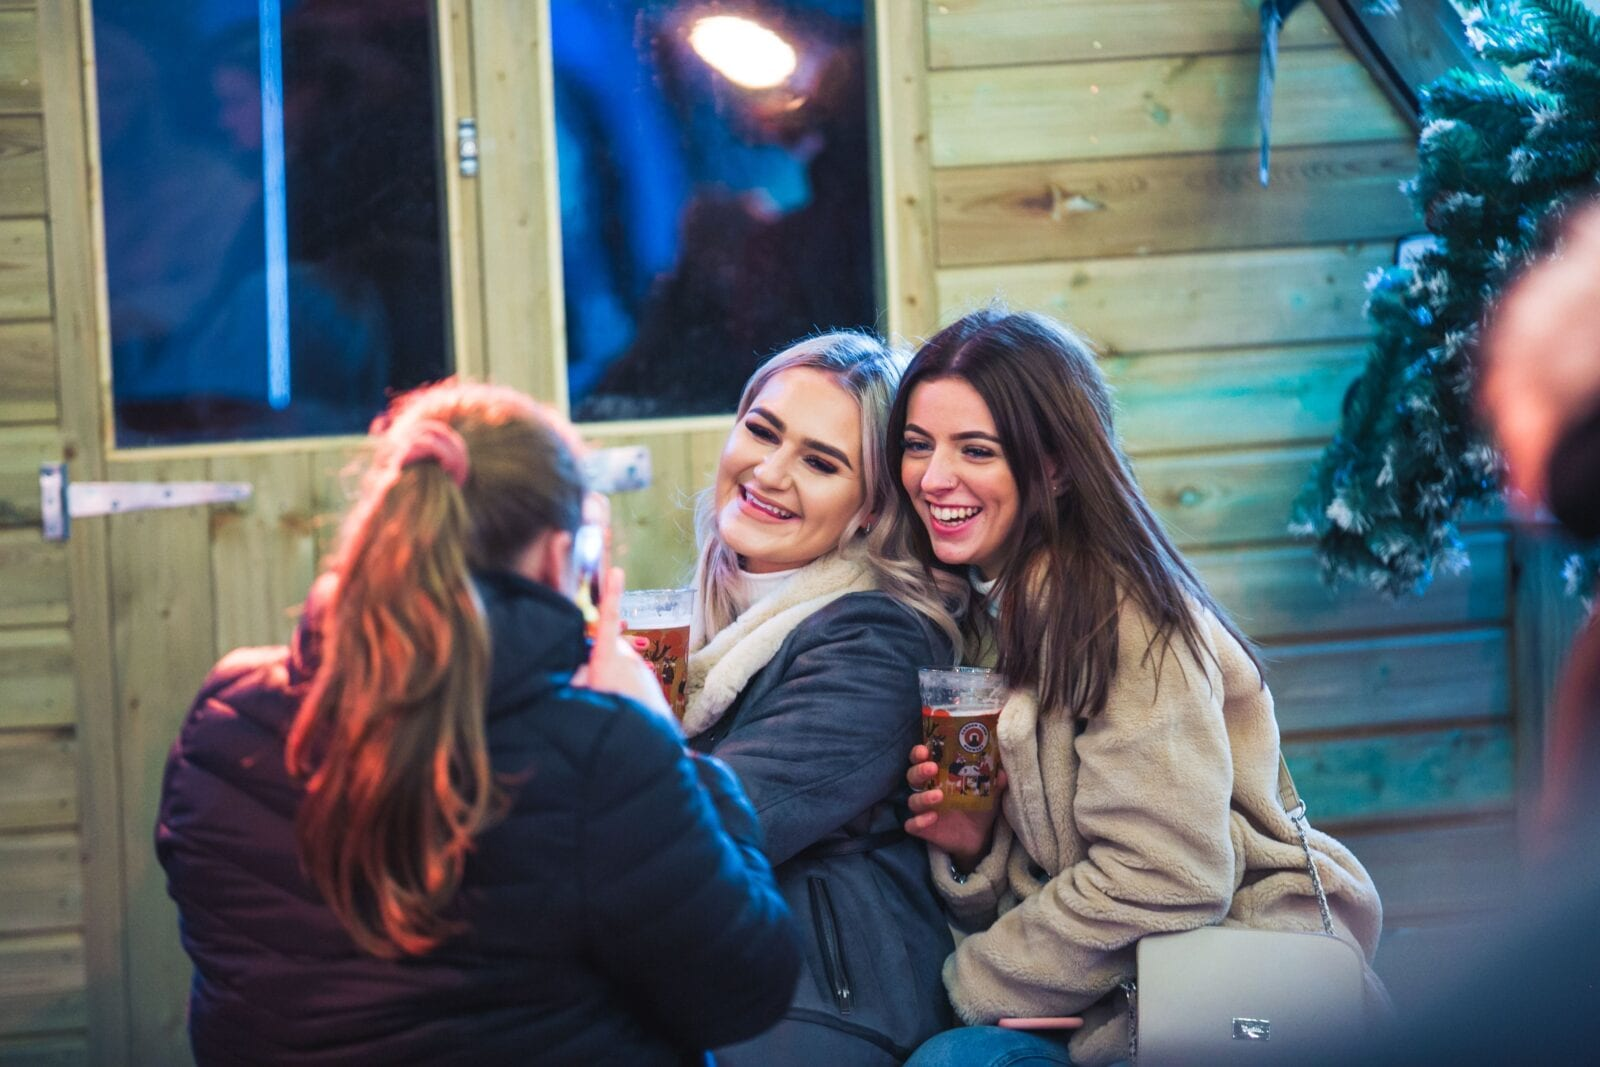 Bar Hütte takes over Great Northern square with music, mince pies and private alpine cabins, The Manc